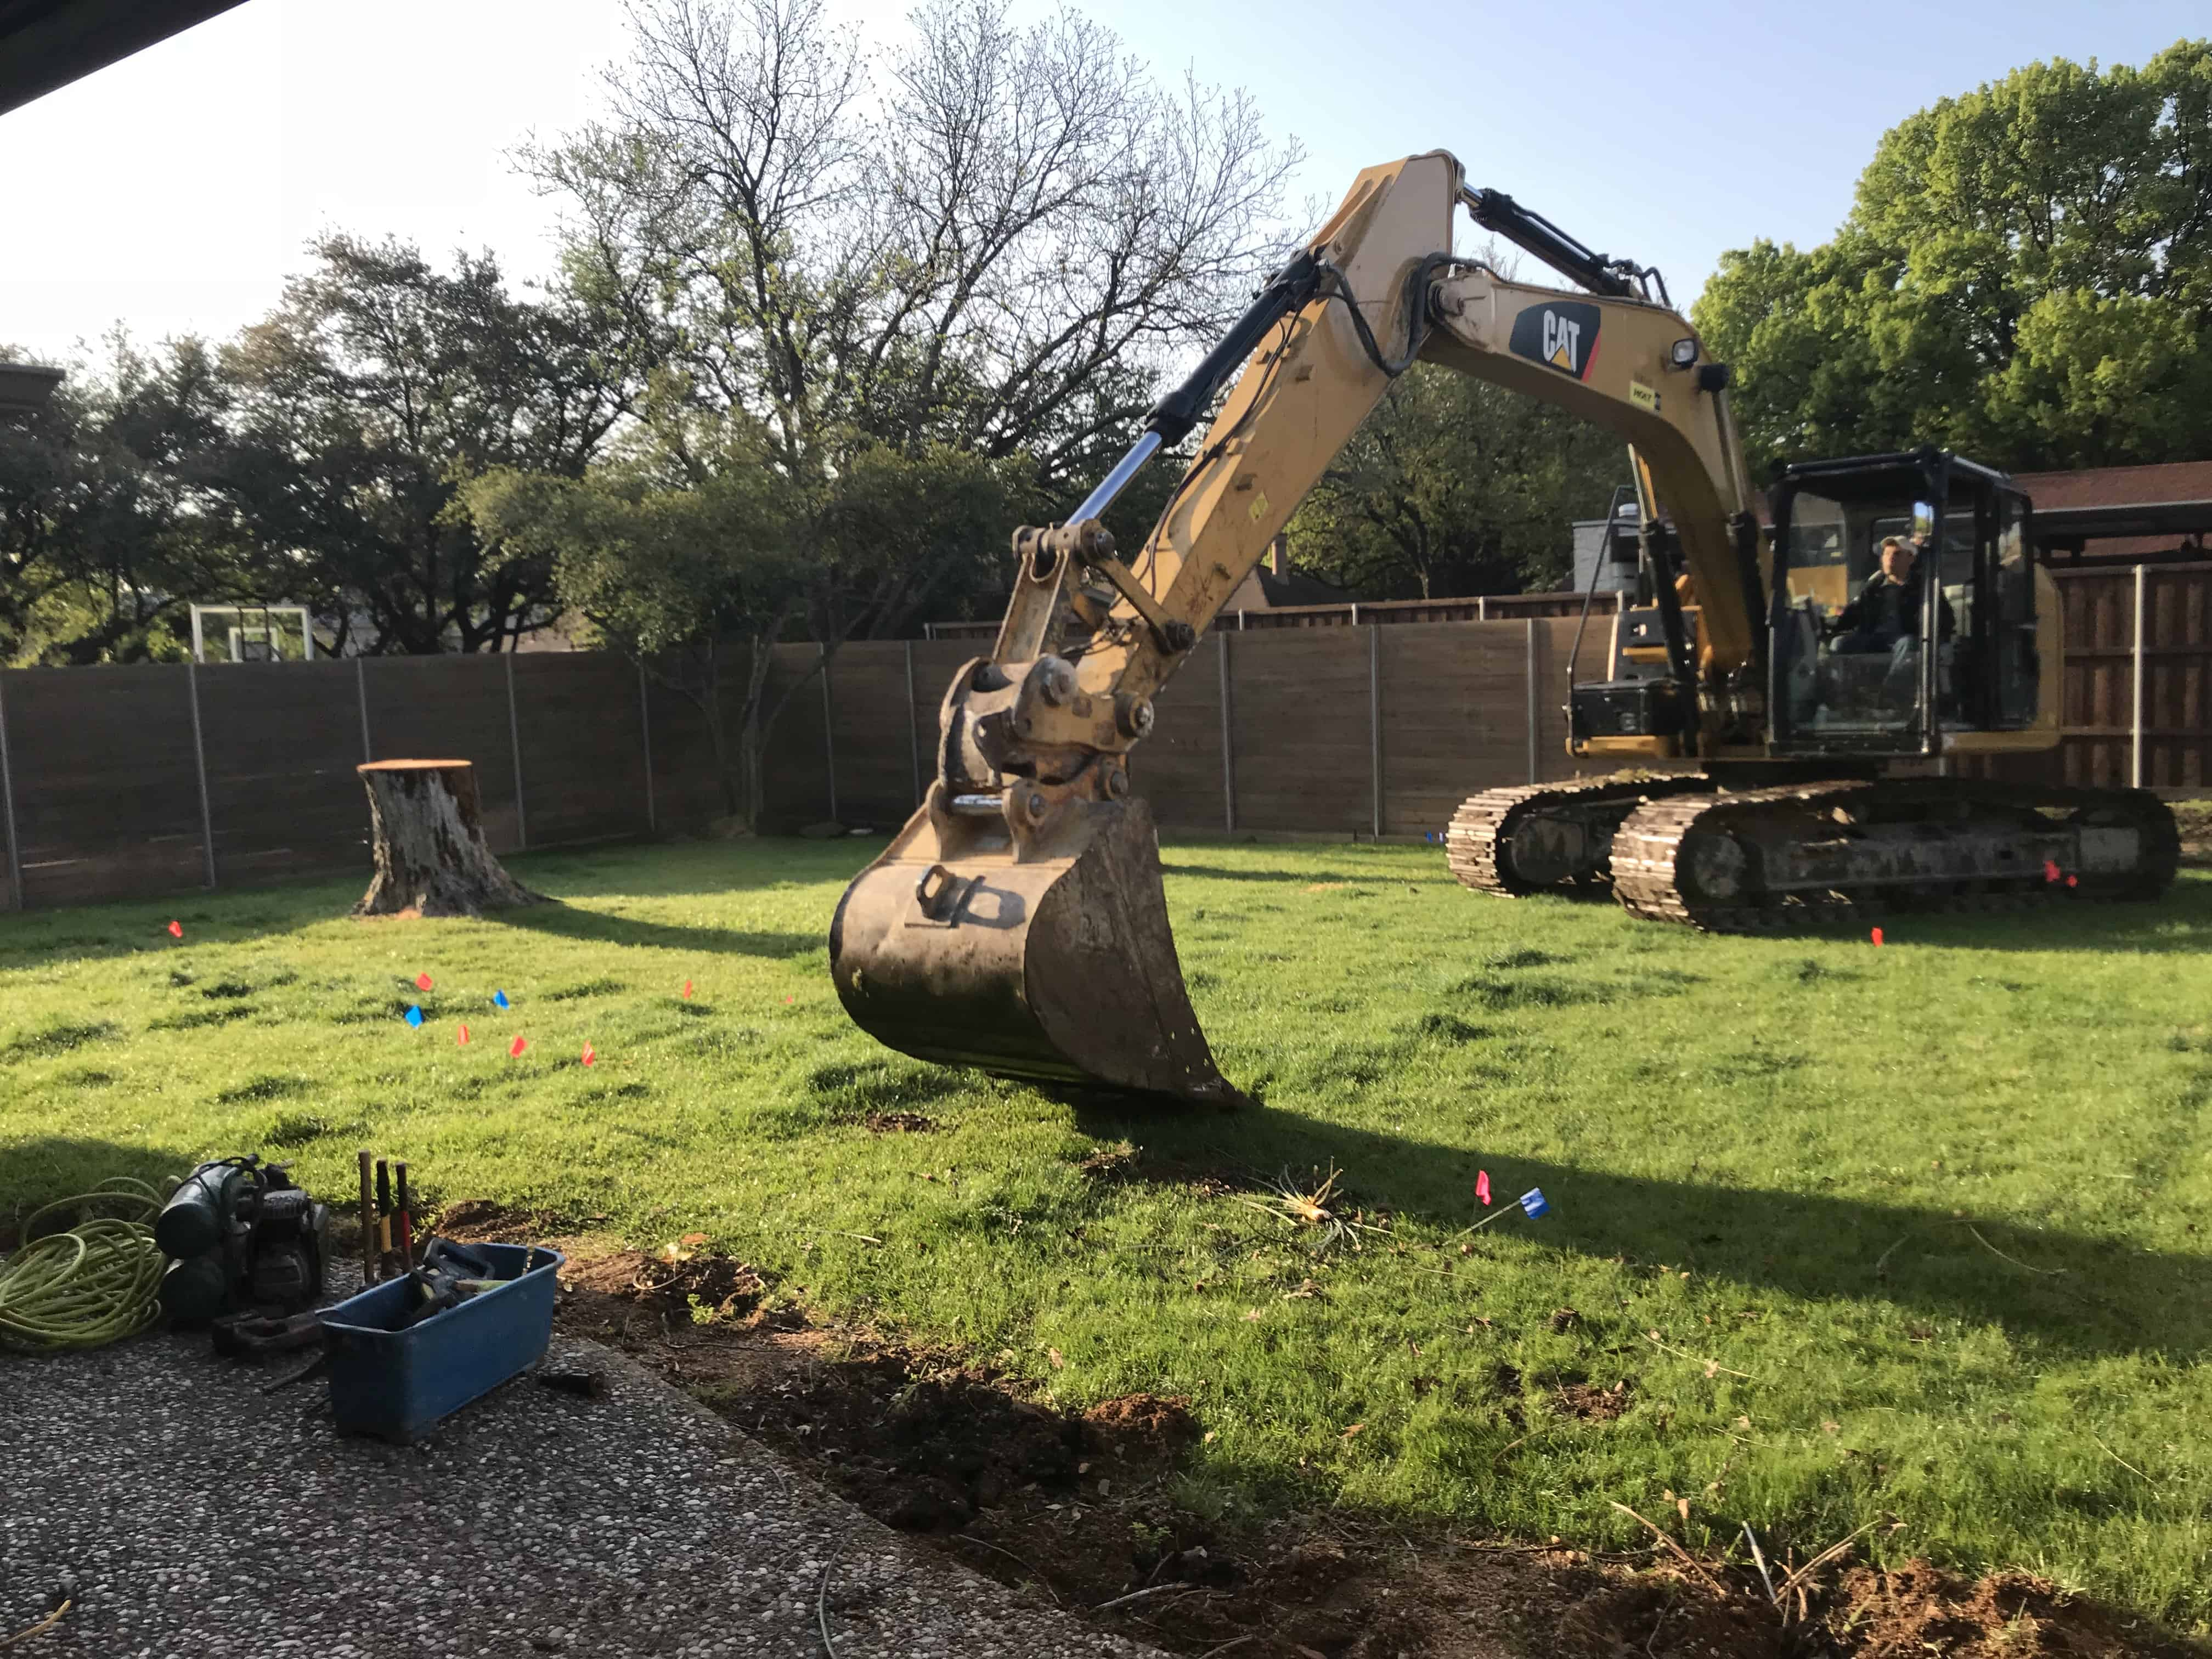 We are beginning the excavation phase of a new project in Dallas, TX. The Collins job is now underway and we are officially breaking ground on another beautiful swimming pool. First step in all new swimming pools is Excavation.